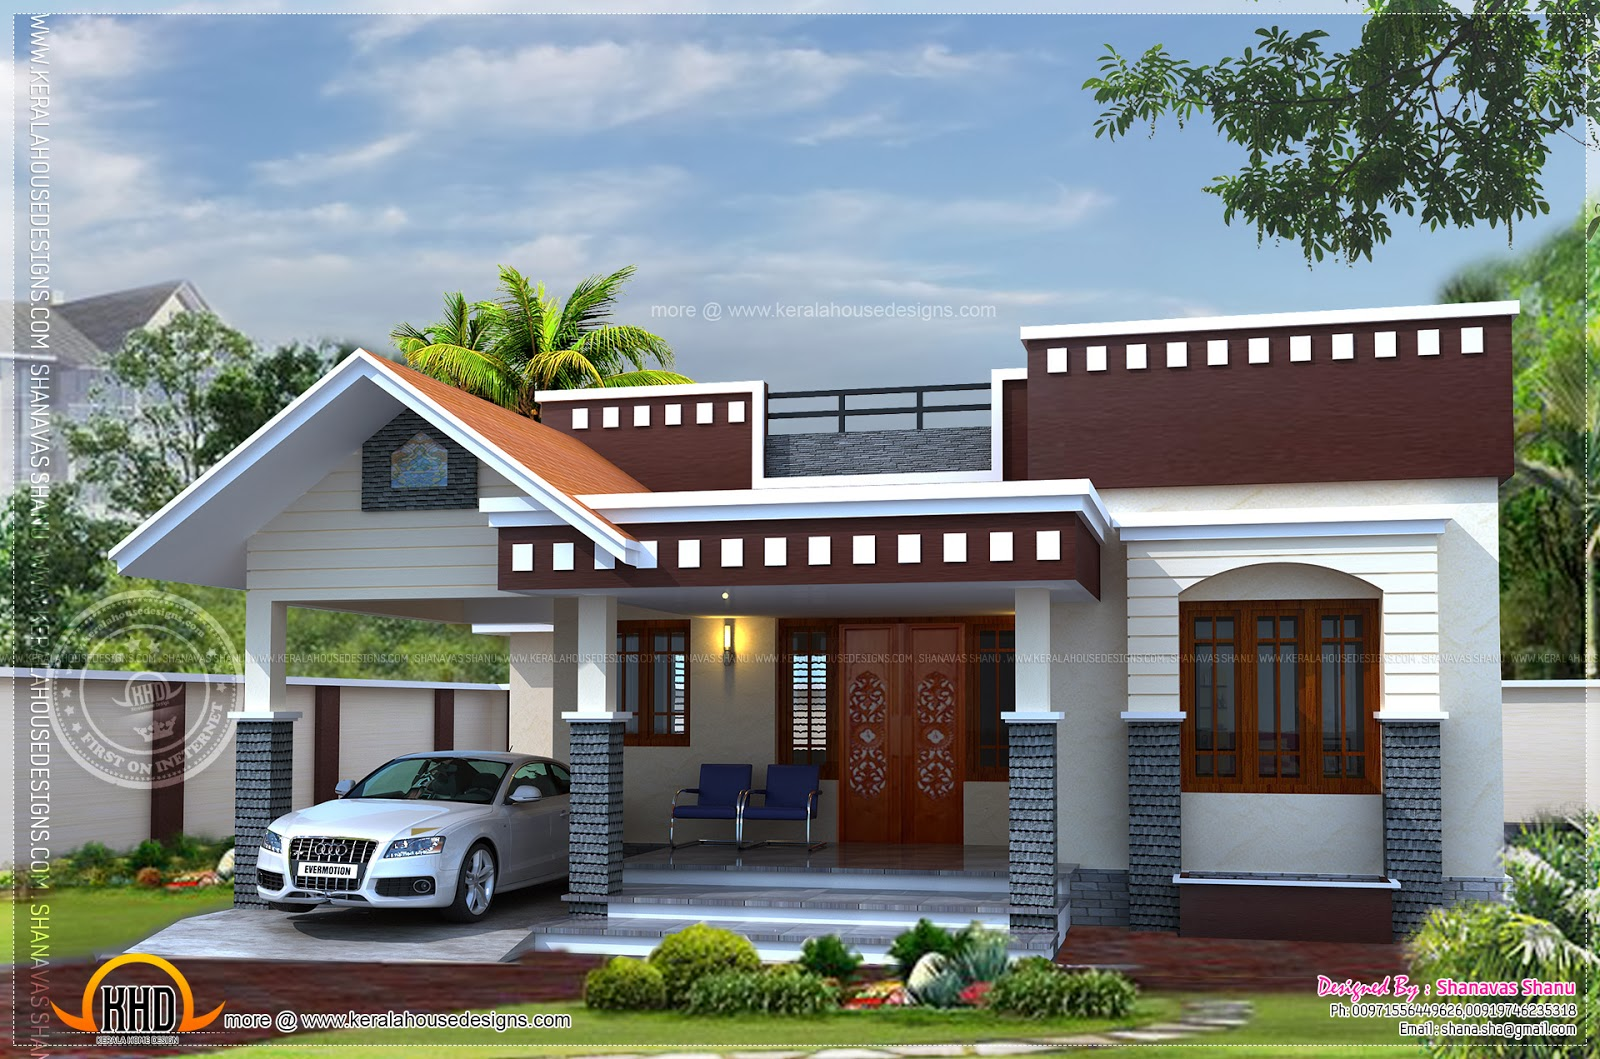 Home plan of small house kerala home design and floor plans for Low cost house plans with estimate